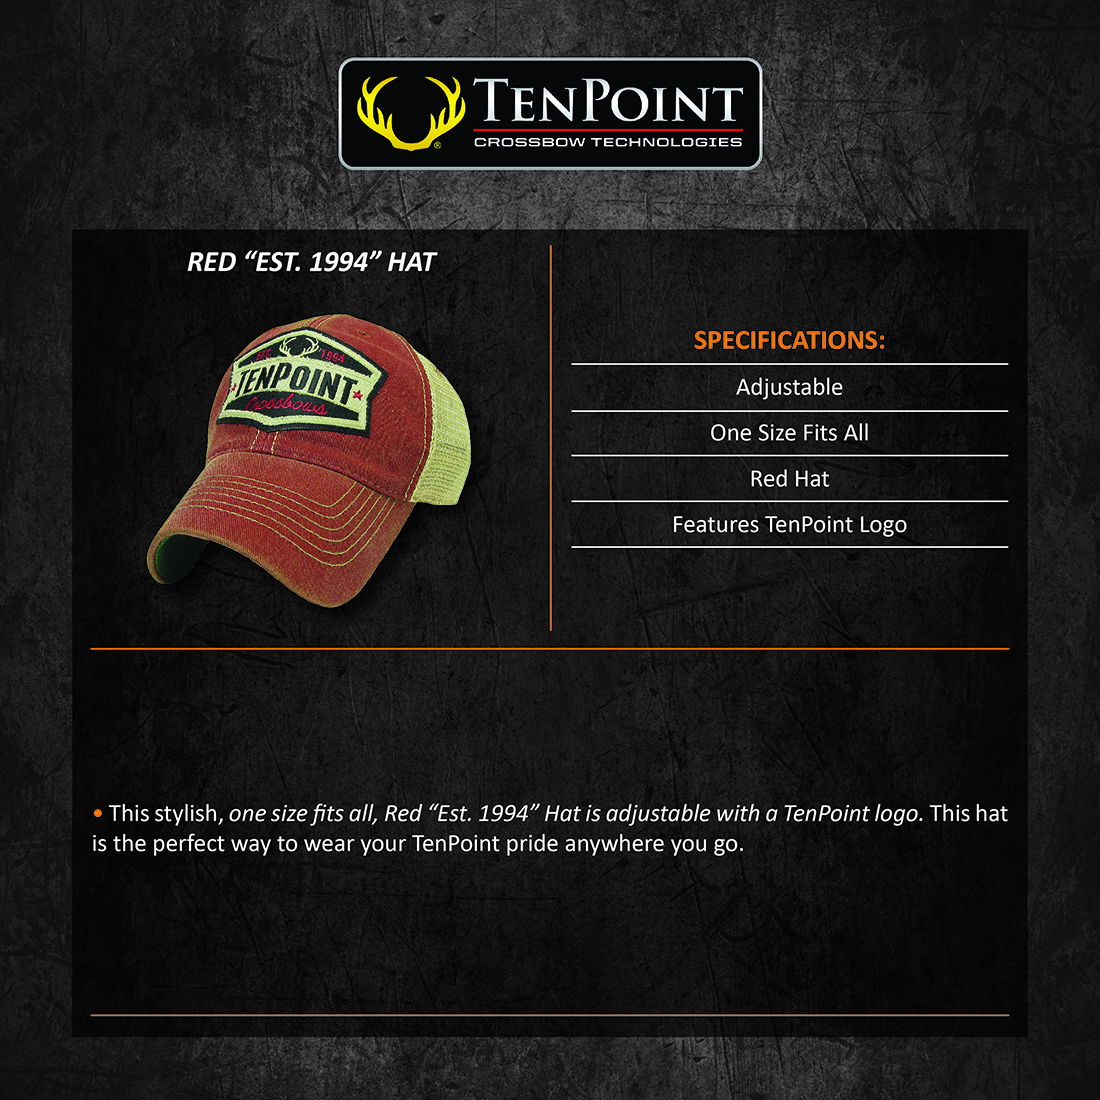 TenPoint_Red_Est_1994_Hat_Product_Description